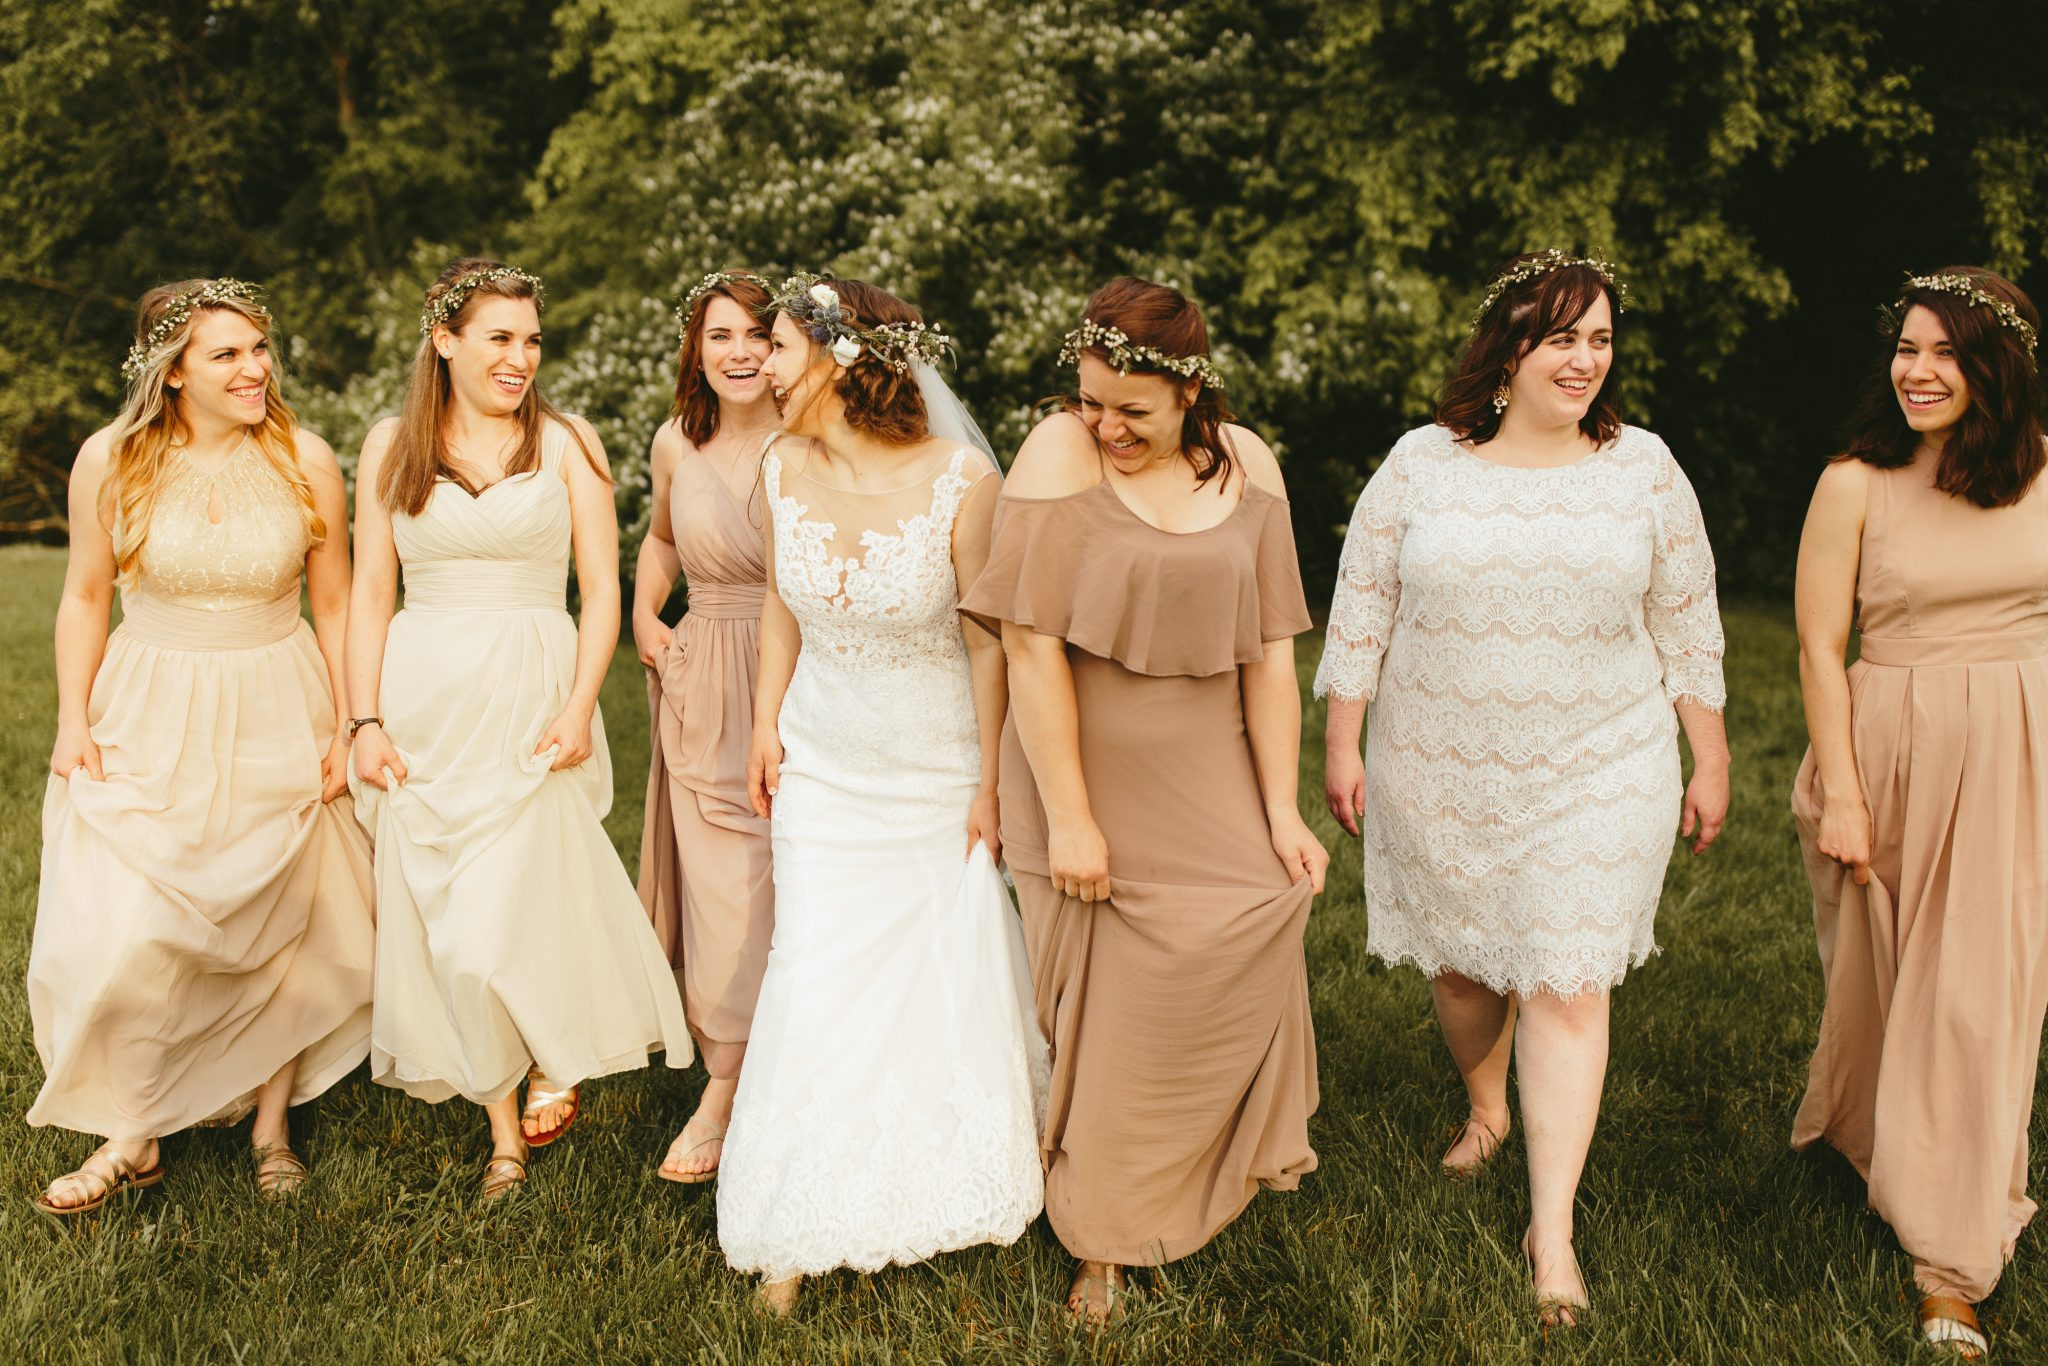 bridal party photos, mismatched bridesmaids dresses, blush bridesmaid dresses,philadelphia documentary wedding photographer,brooklyn wedding photography, Brooklyn wedding, Philadelphia wedding photographer, Philadelphia wedding, Brooklyn new york photographer, unique wedding inspiration, fun wedding photos, romantic wedding, destination wedding photographer, wedding photography inspiration,barn wedding ideas, barn wedding, unique barn wedding inspiration